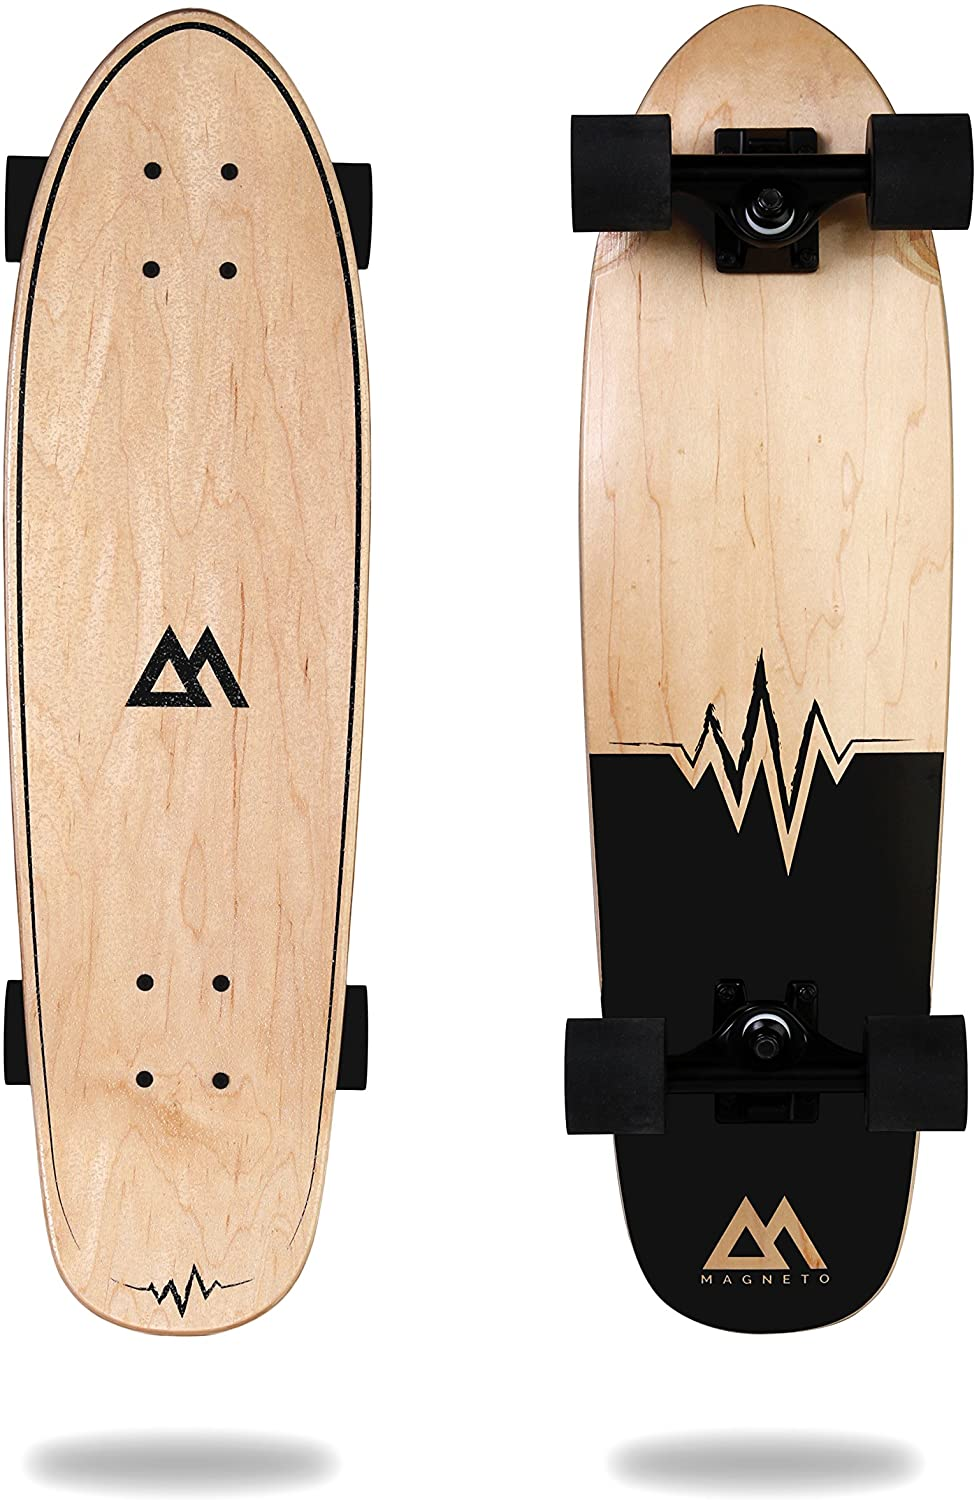 gifts-for-chefs-skateboard